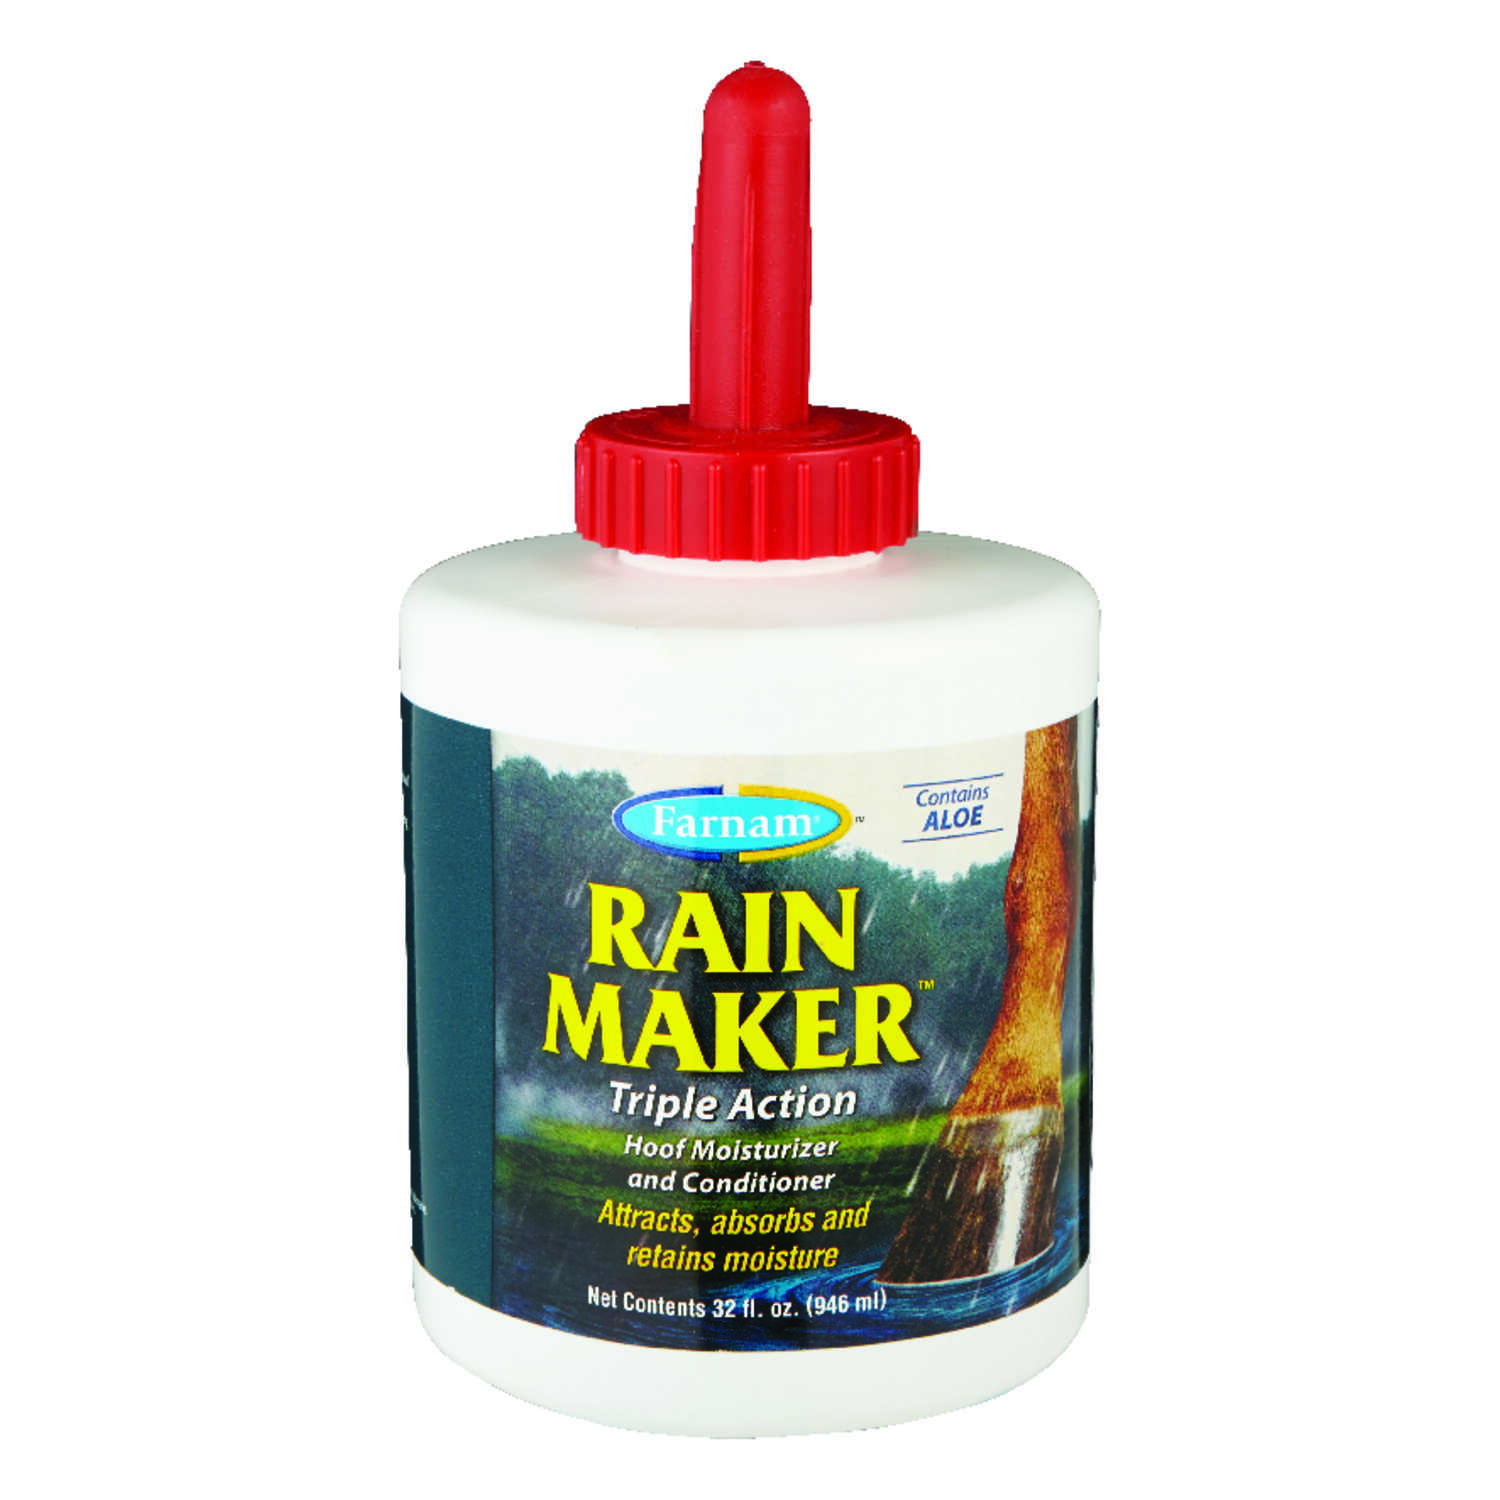 Farnam  Rain Maker  Hoof Conditioner  For Horse 32 oz.